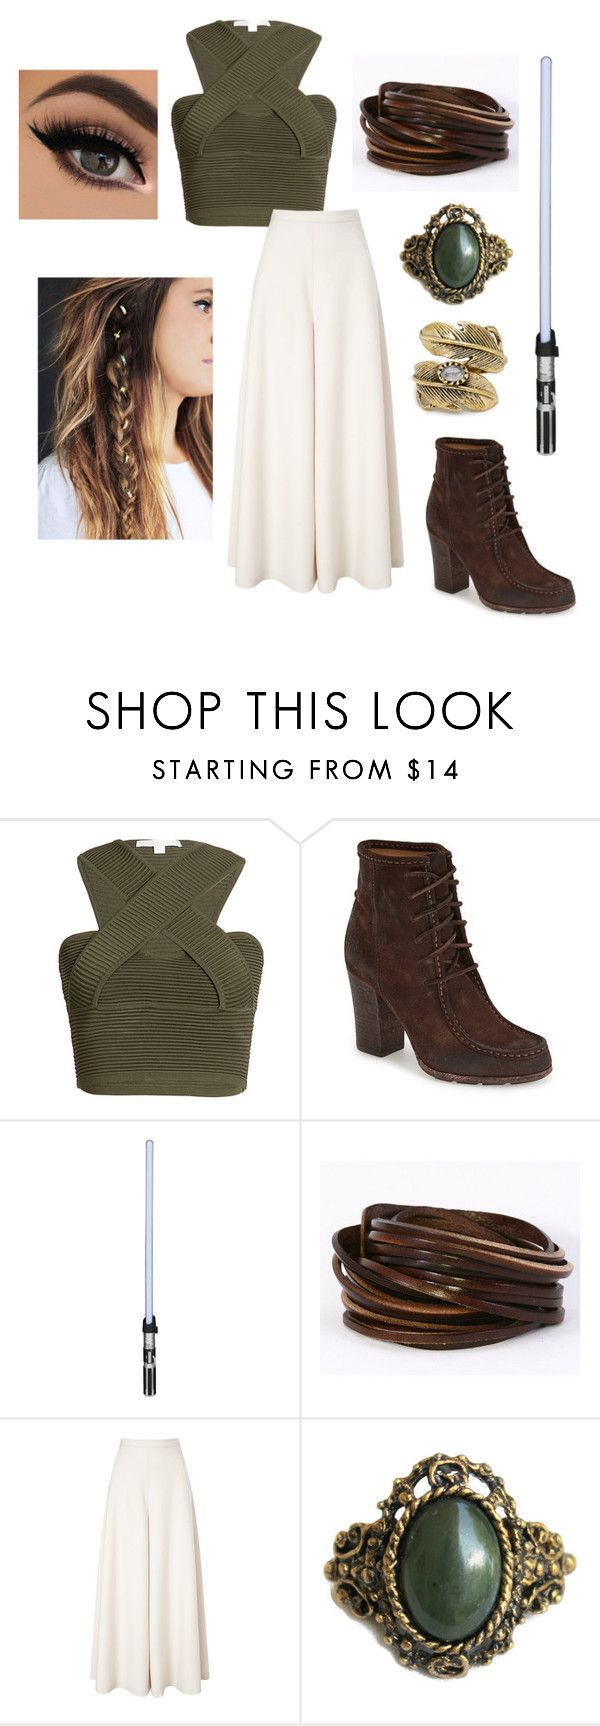 """""""Rey Lars Light Side Jedi Outfit"""" by free-byrd ❤ liked on Polyvore featuring Jonathan Simkhai, Frye, Temperley London, Natalie B, women's clothing, women's fashion, women, female, woman and misses"""